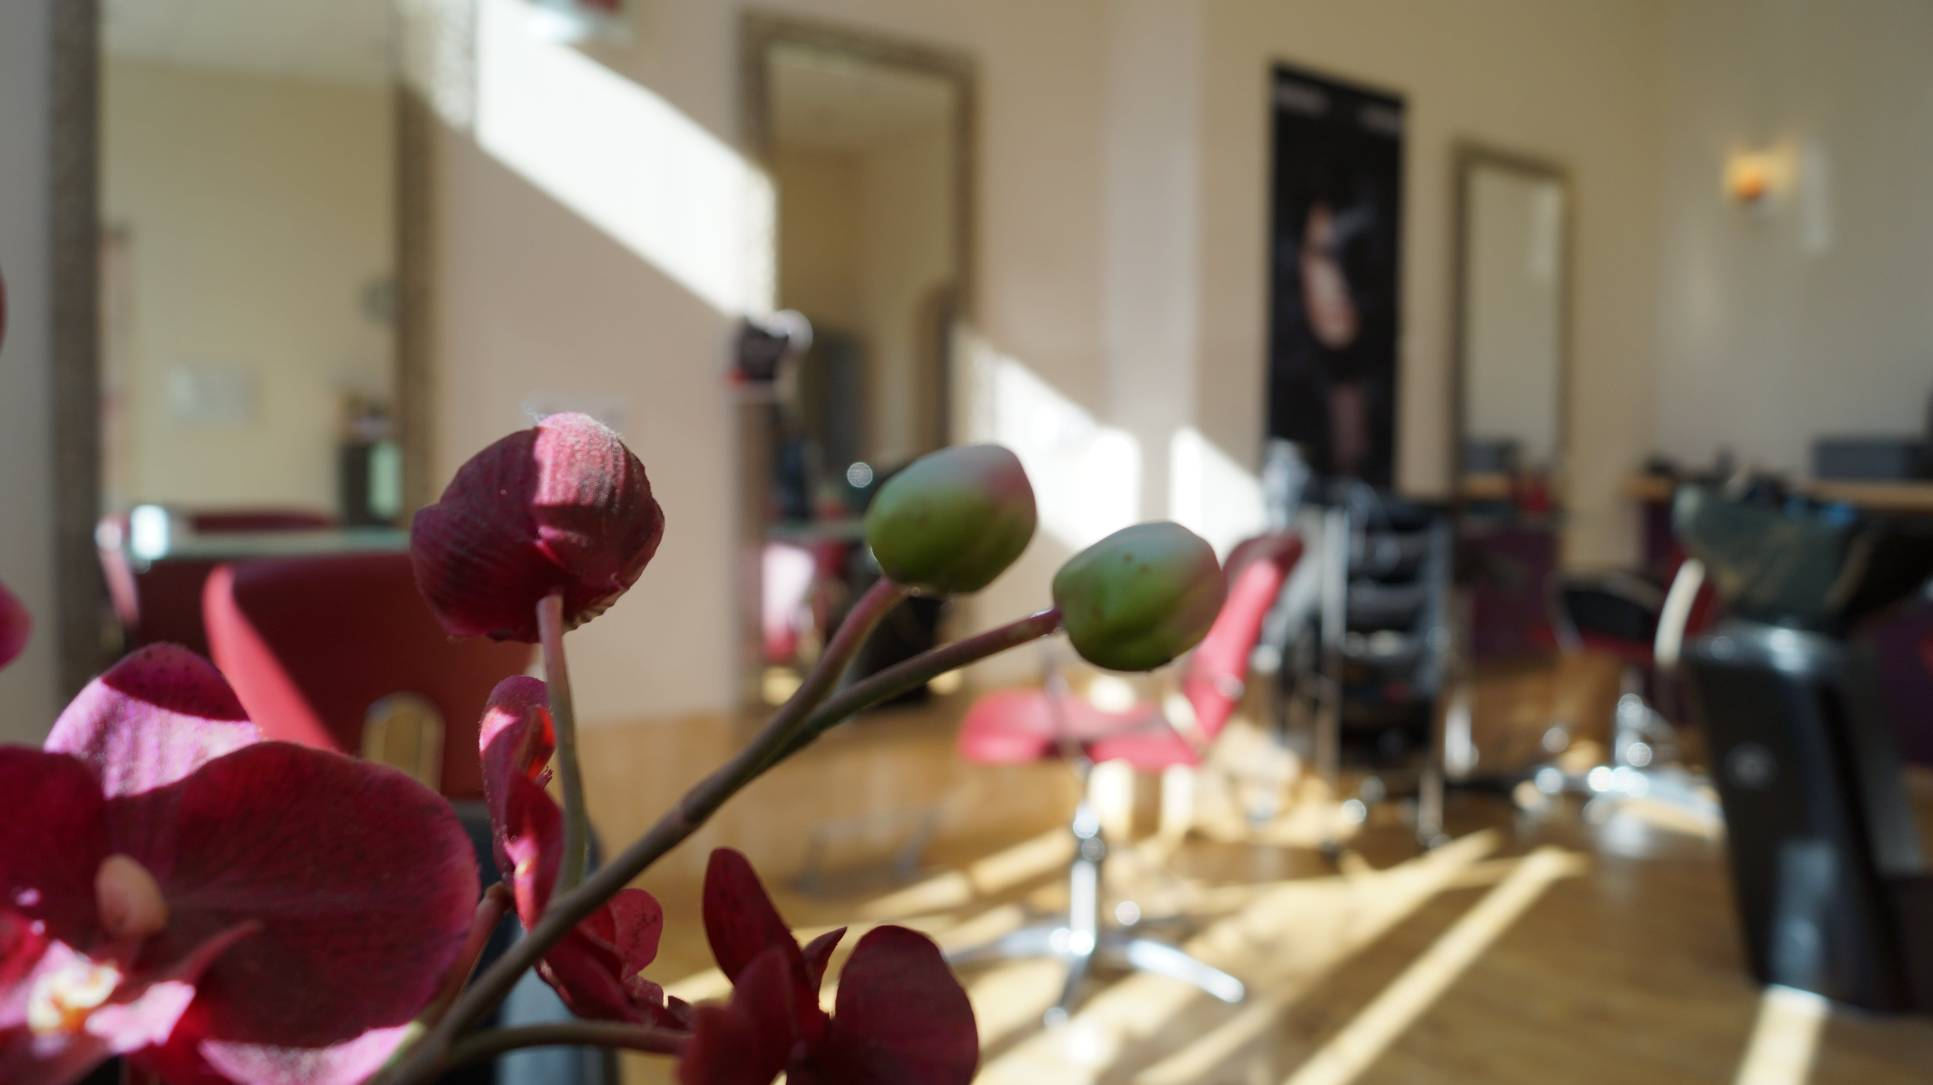 Blick in den Salon